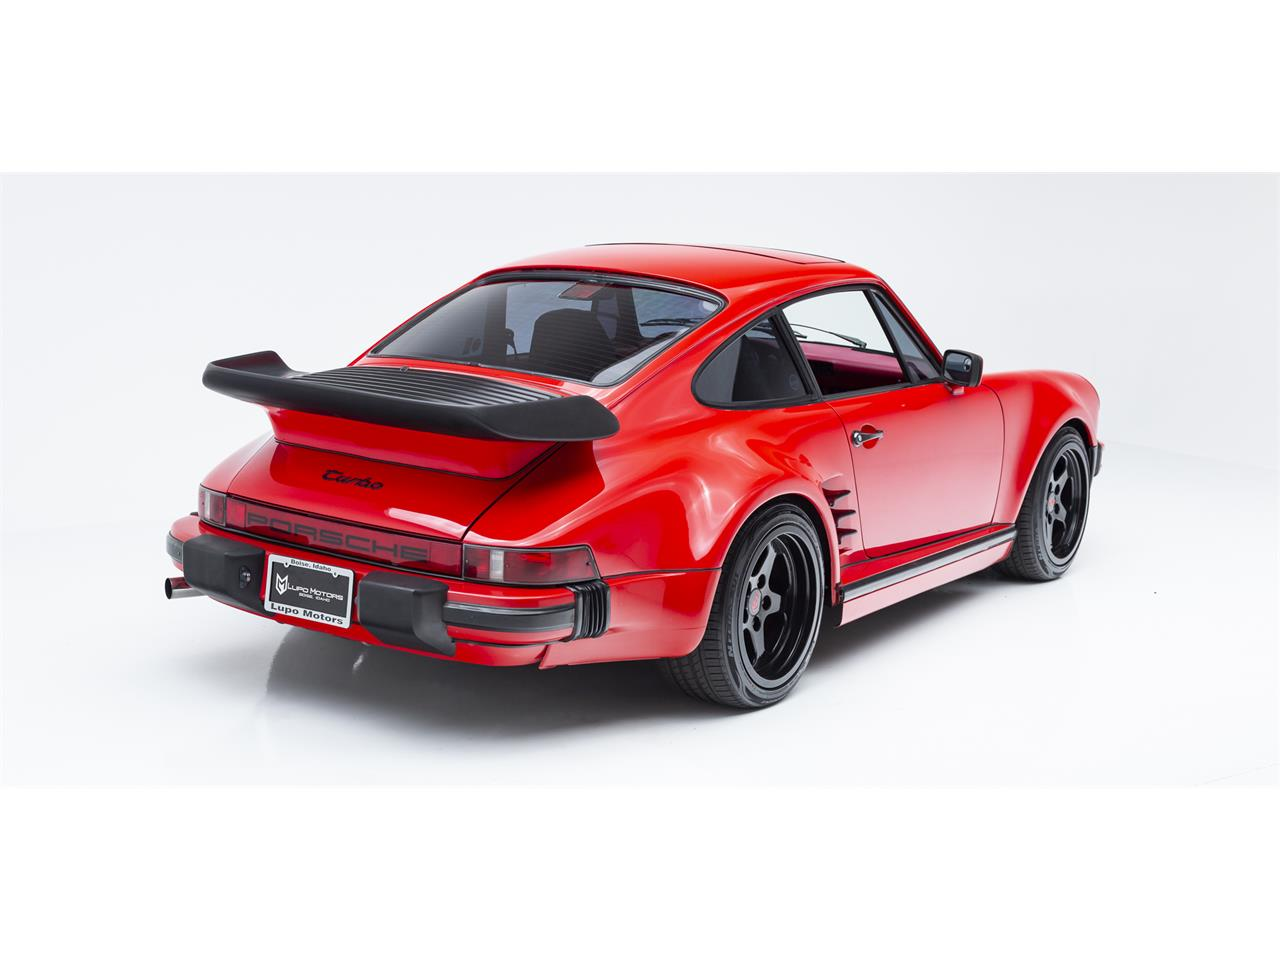 Large Picture of 1979 911 Carrera located in Idaho - $49,995.00 Offered by a Private Seller - QIAZ